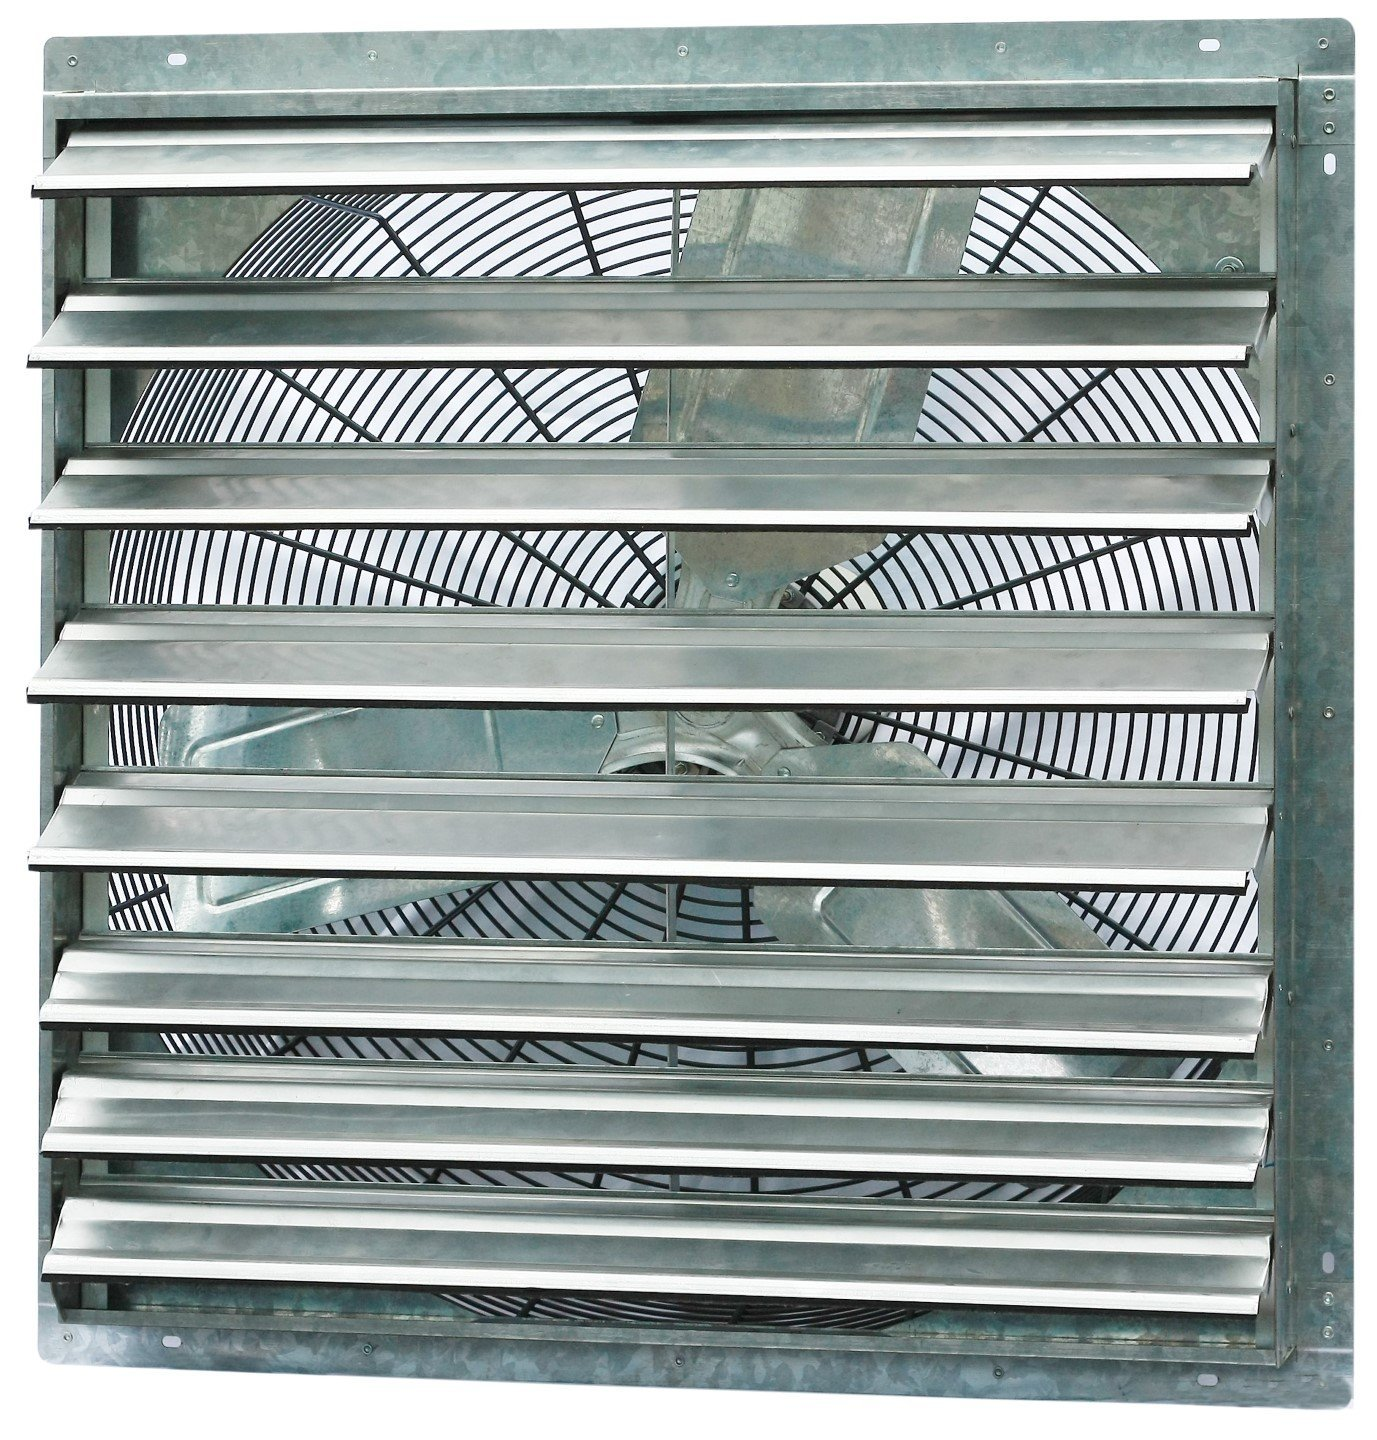 iLIVING ILG8SF30S Wall-Mounted Single Speed Shutter Exhaust Fan, 30'' by Iliving